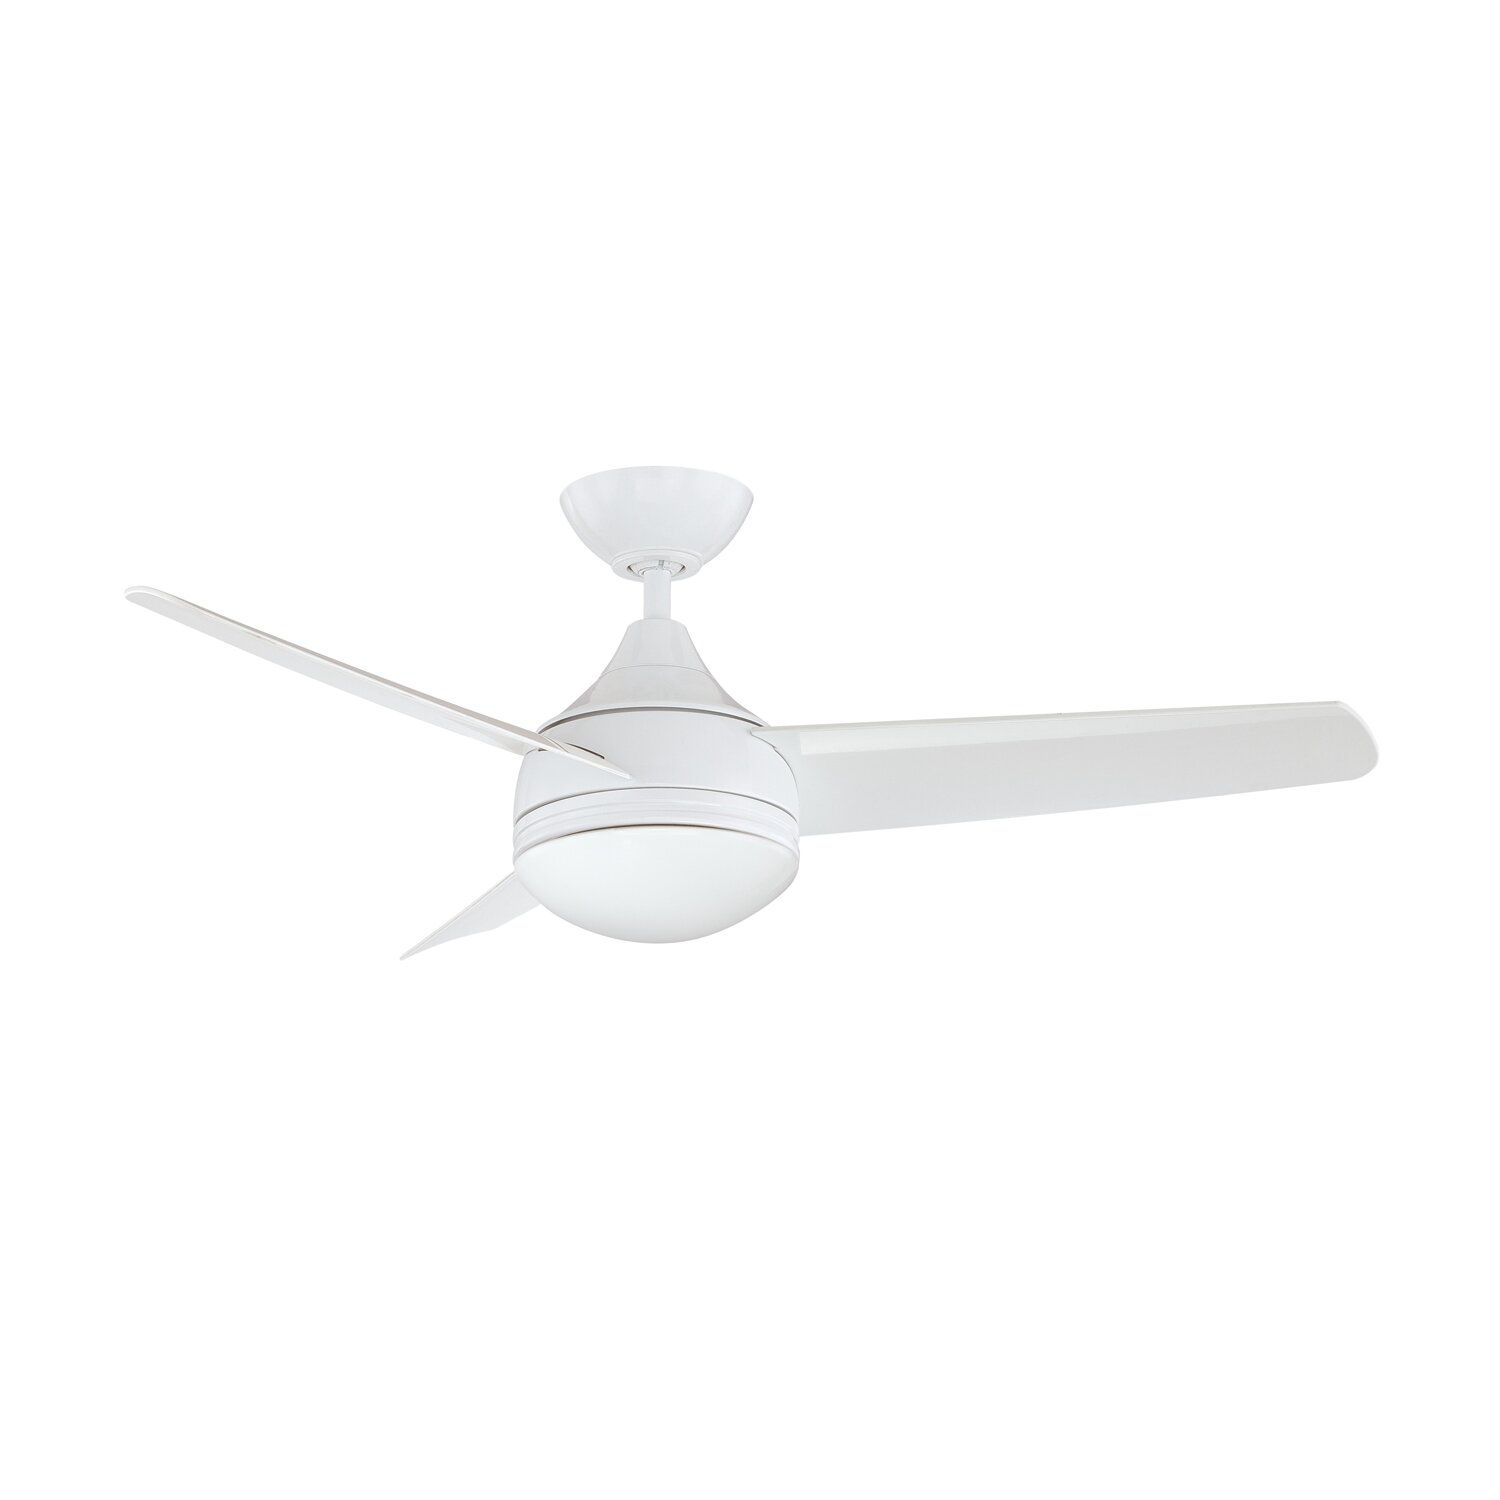 "Kendal Lighting Cordova 42 In Ceiling Fan: 42"" Moderno 3 Blade Ceiling Fan With Wall Remote"